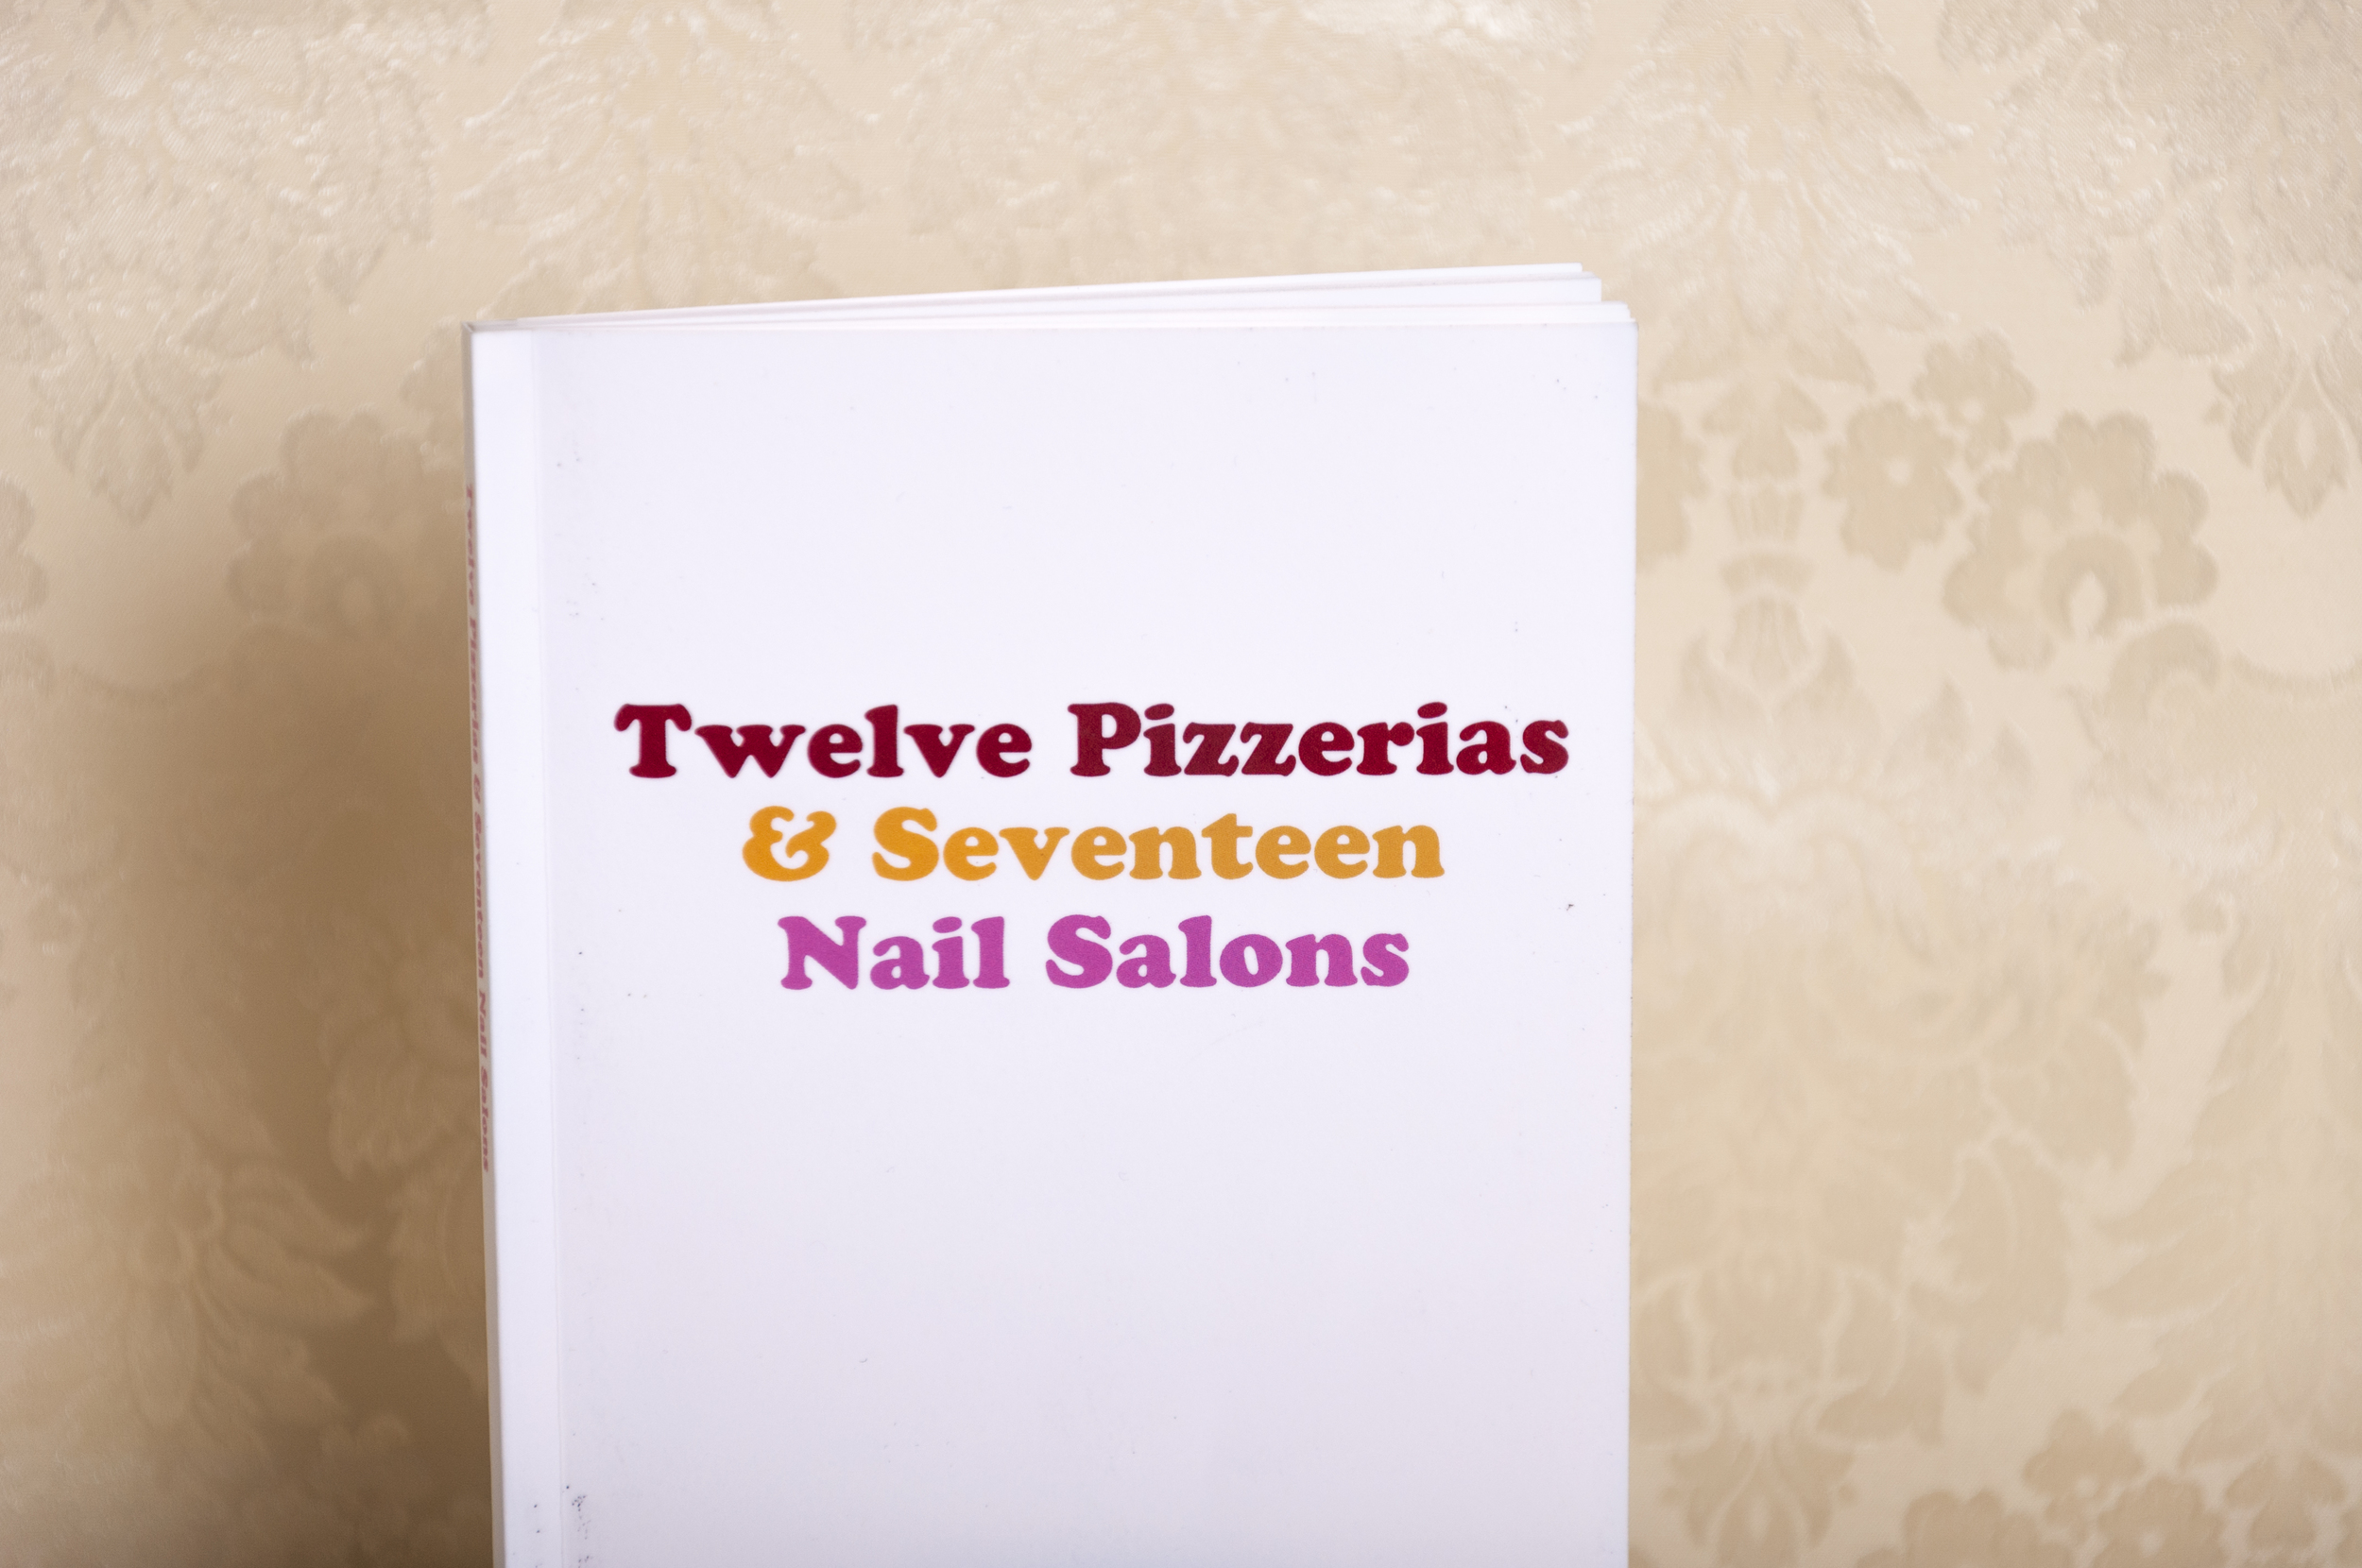 An Ed Ruscha inspired print-on-demand publication consisting of all of the Pizzerias and Nail Salons in my hometown. 2014.  First Editions: Sold Out  Stay tuned for a Second Edition